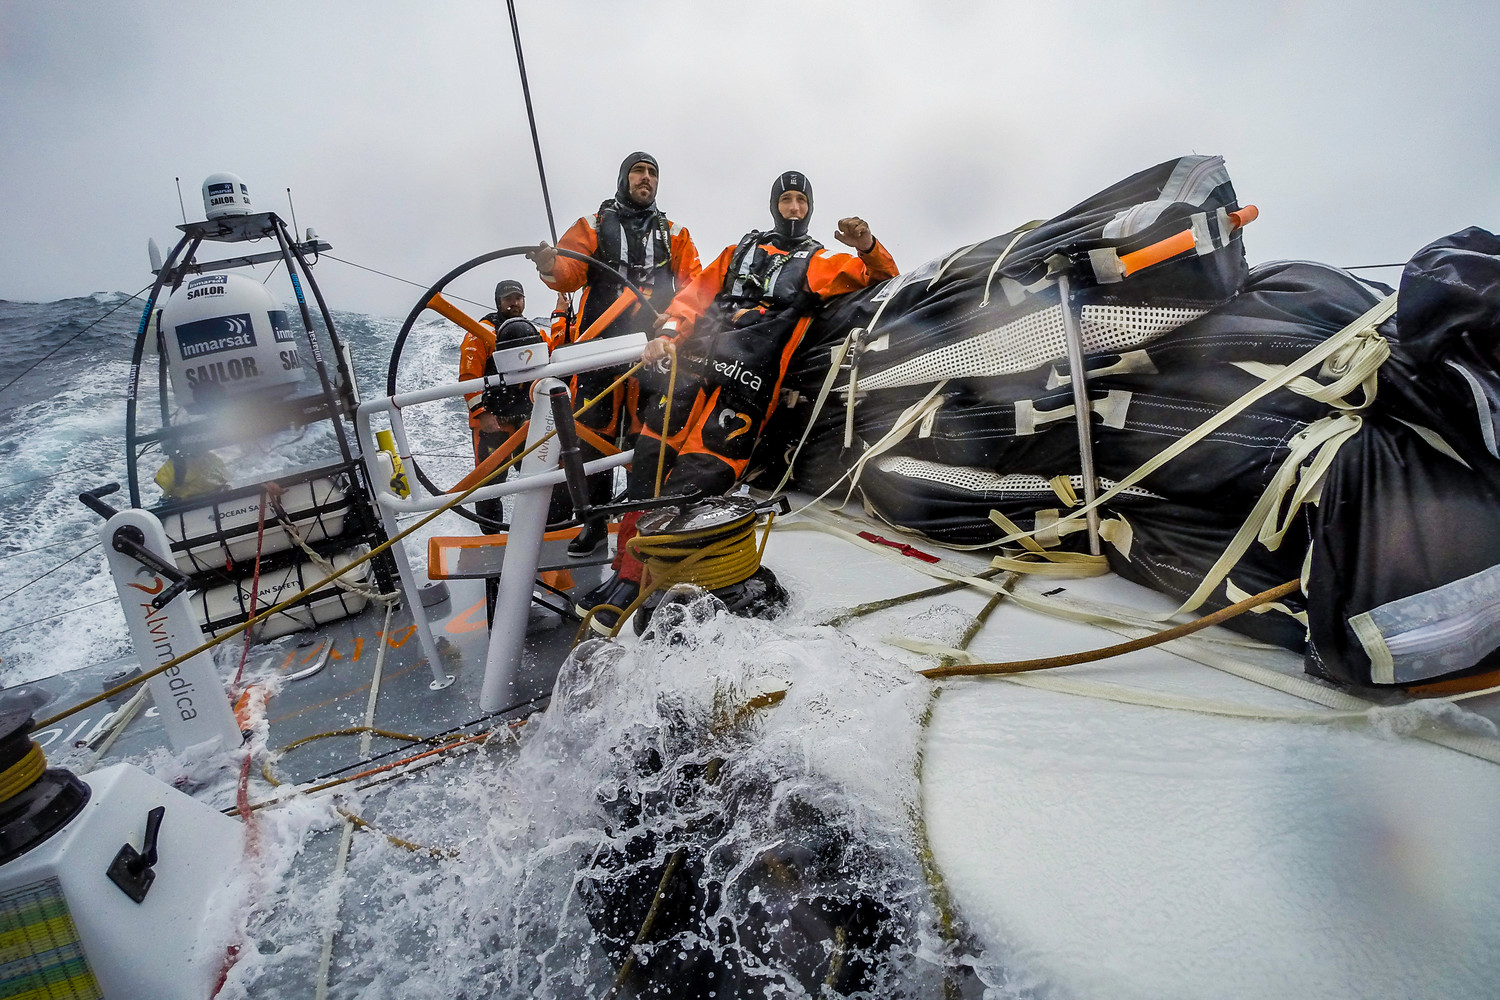 A 6 a.m. jibe east and an early build in windspeed keep Team Alvimedica on their toes with a week of hard sailing left until Cape Town.